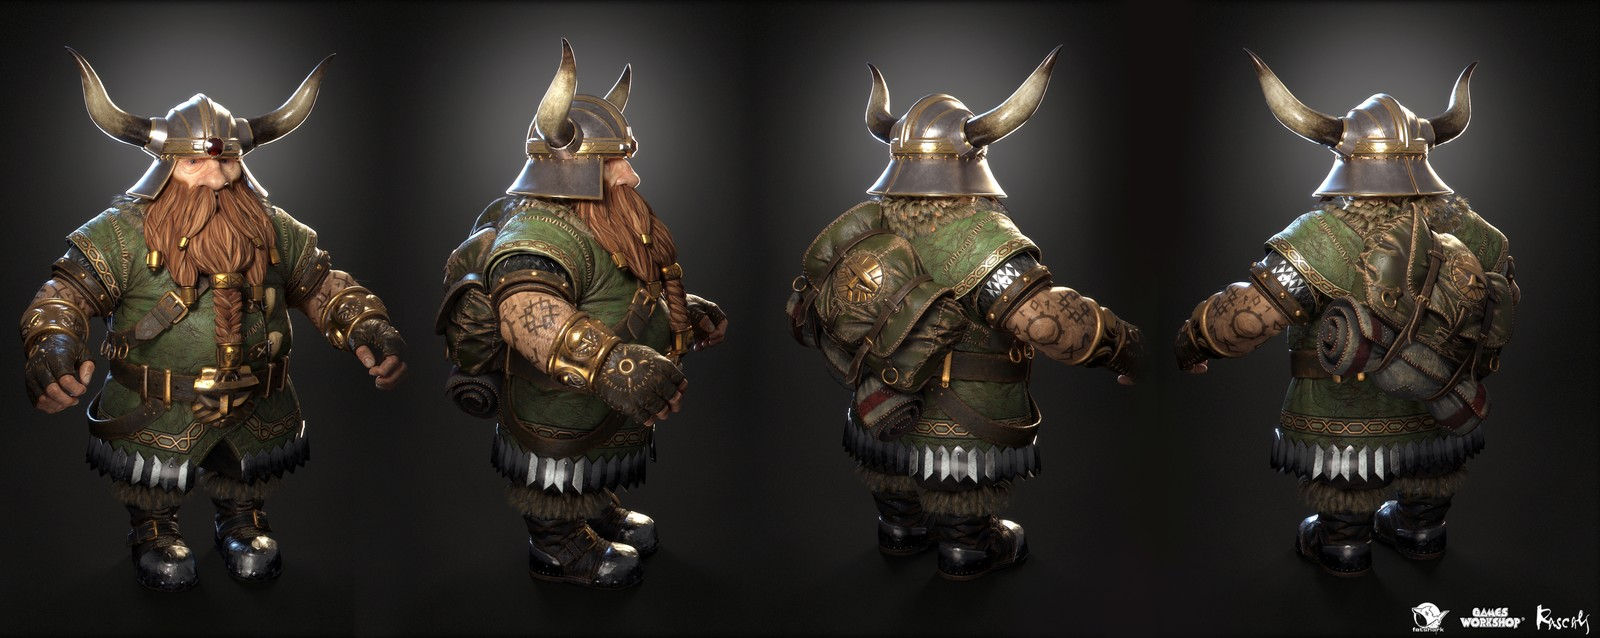 Bardin is one of the ever-bickering ensamble of ragtag heroes that fight against the hordes of the rat-like Skaven and their sinister allies from the Chaos faction.